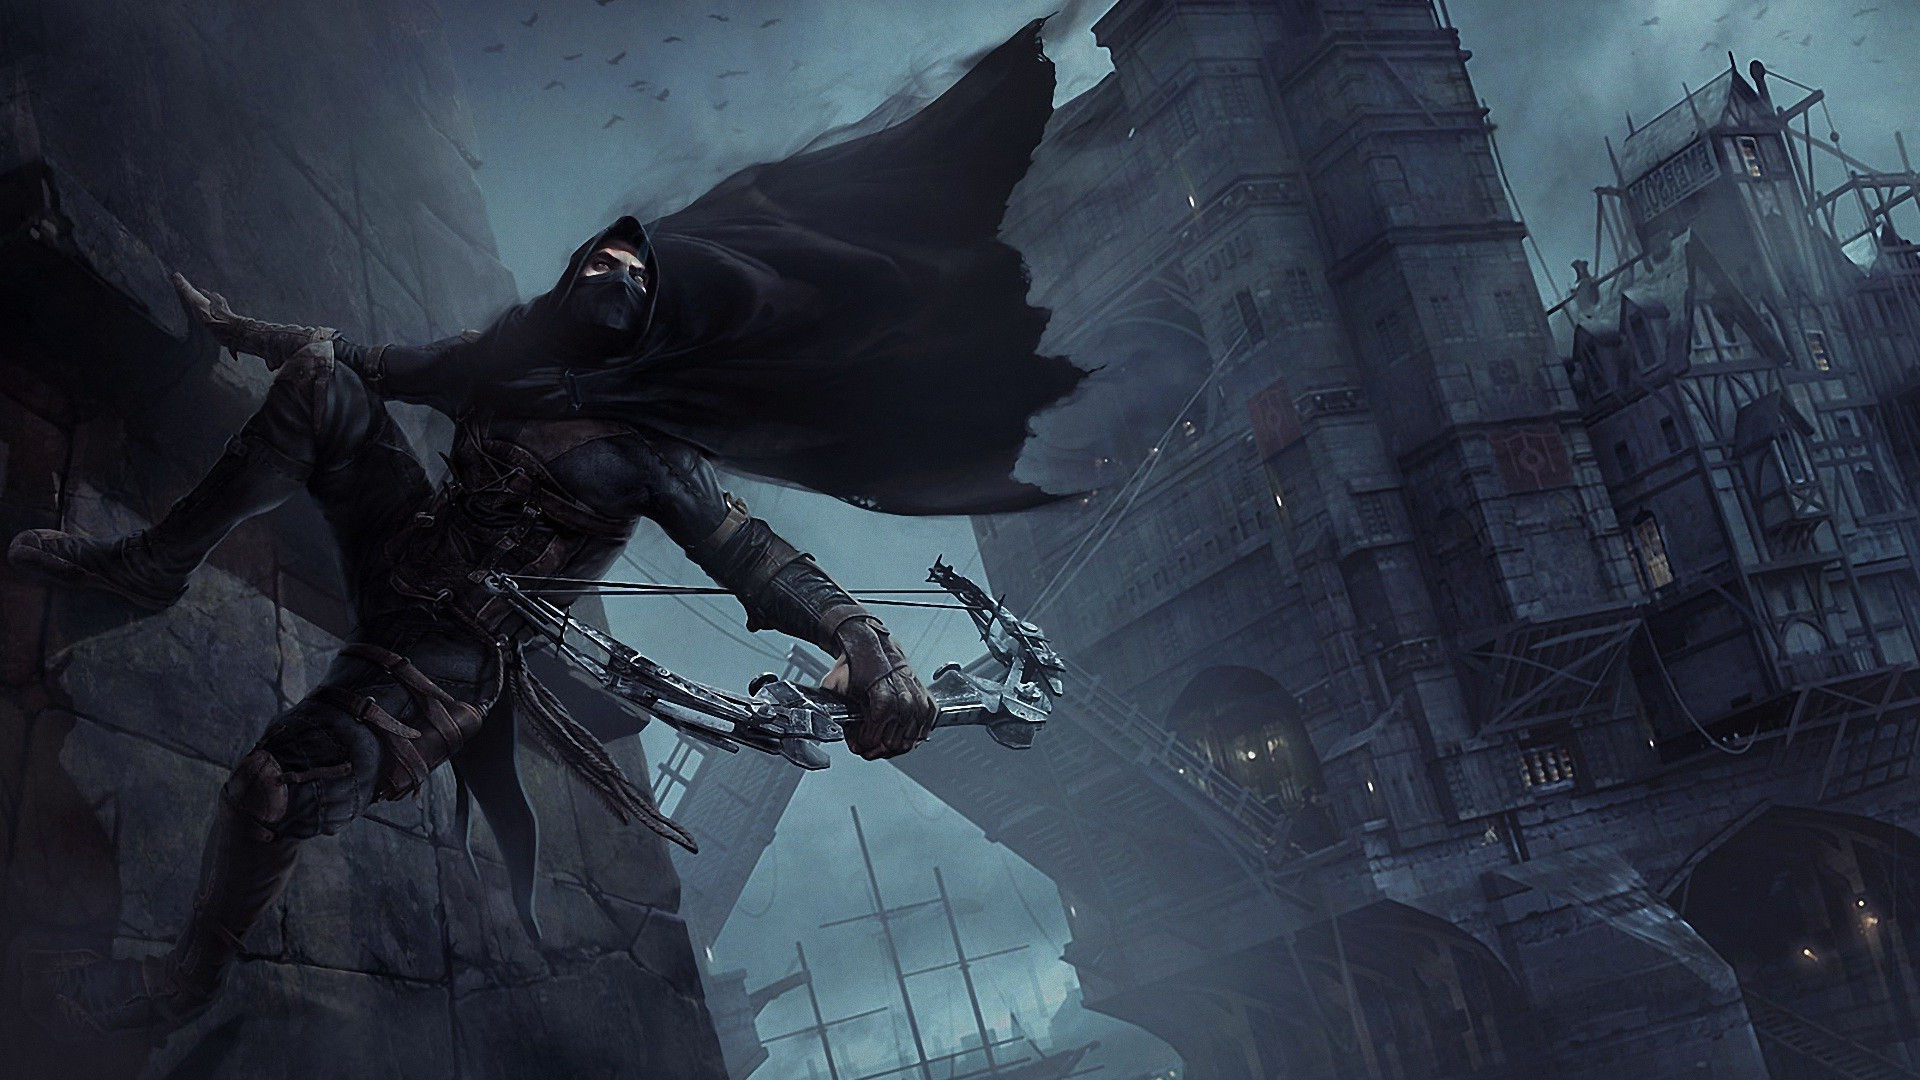 thief game hd wallpapers free download incredible hd wallpapers of thief game